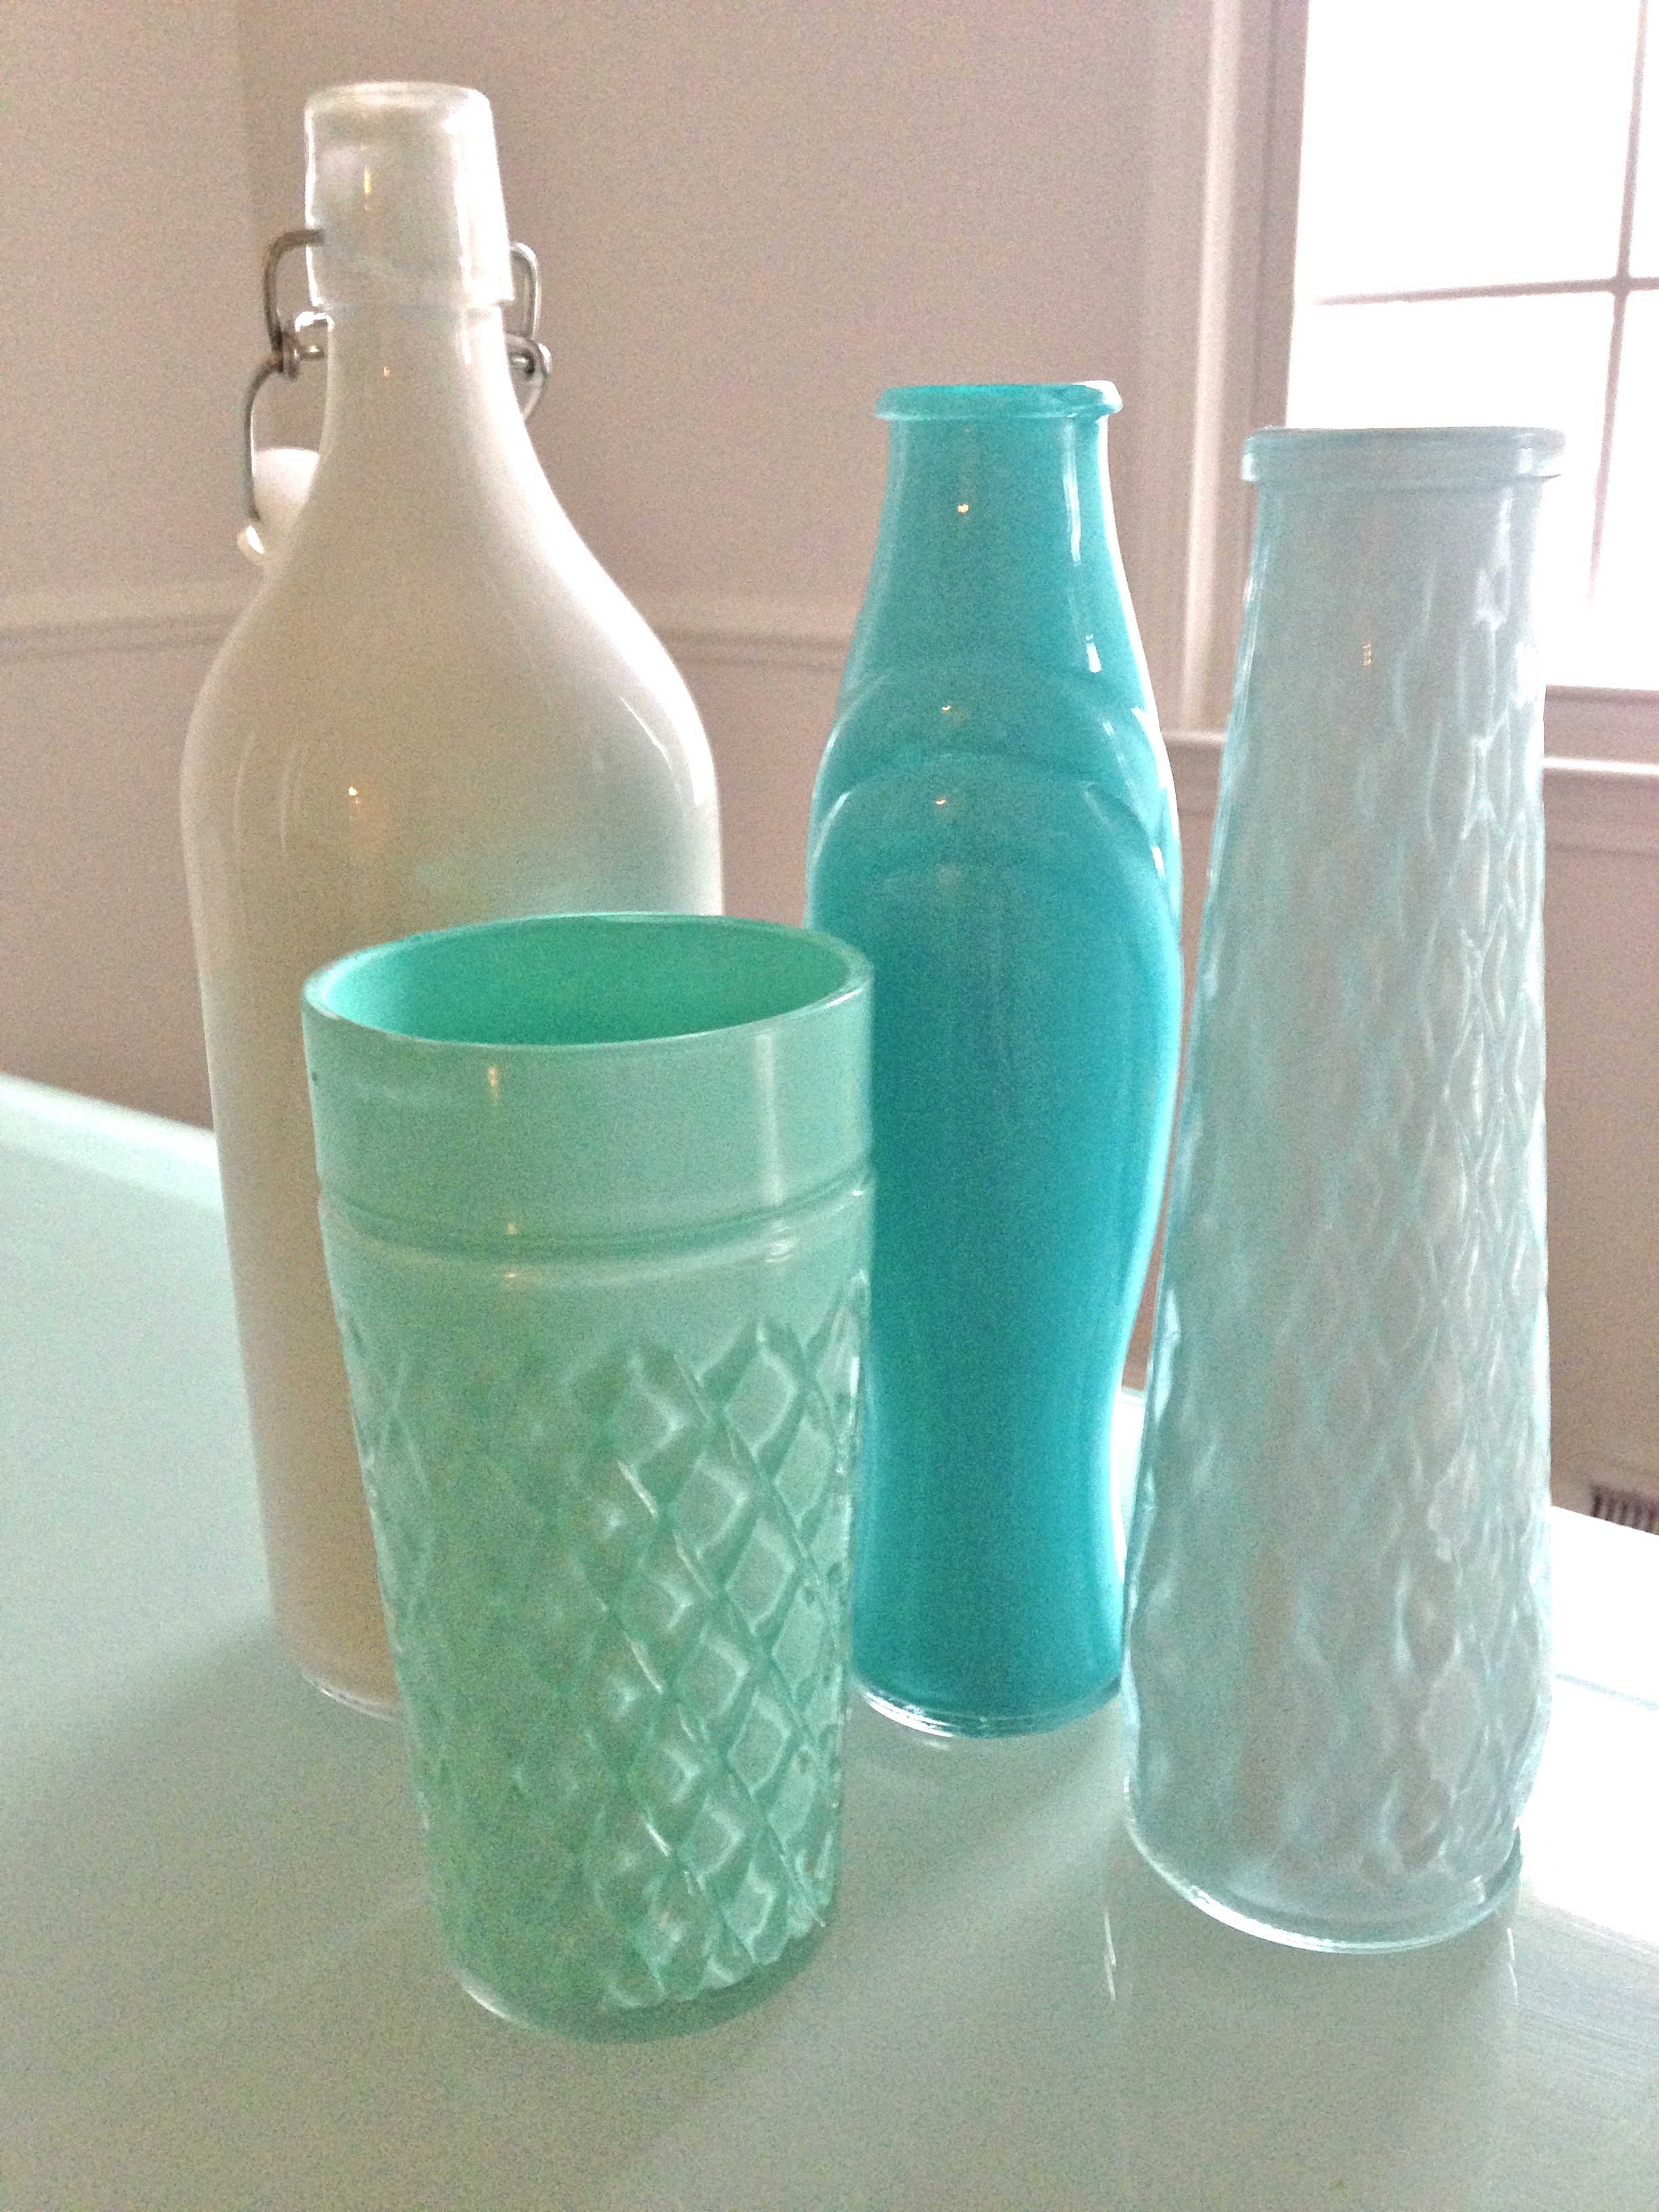 DIY colored glass bottles | mandy odle